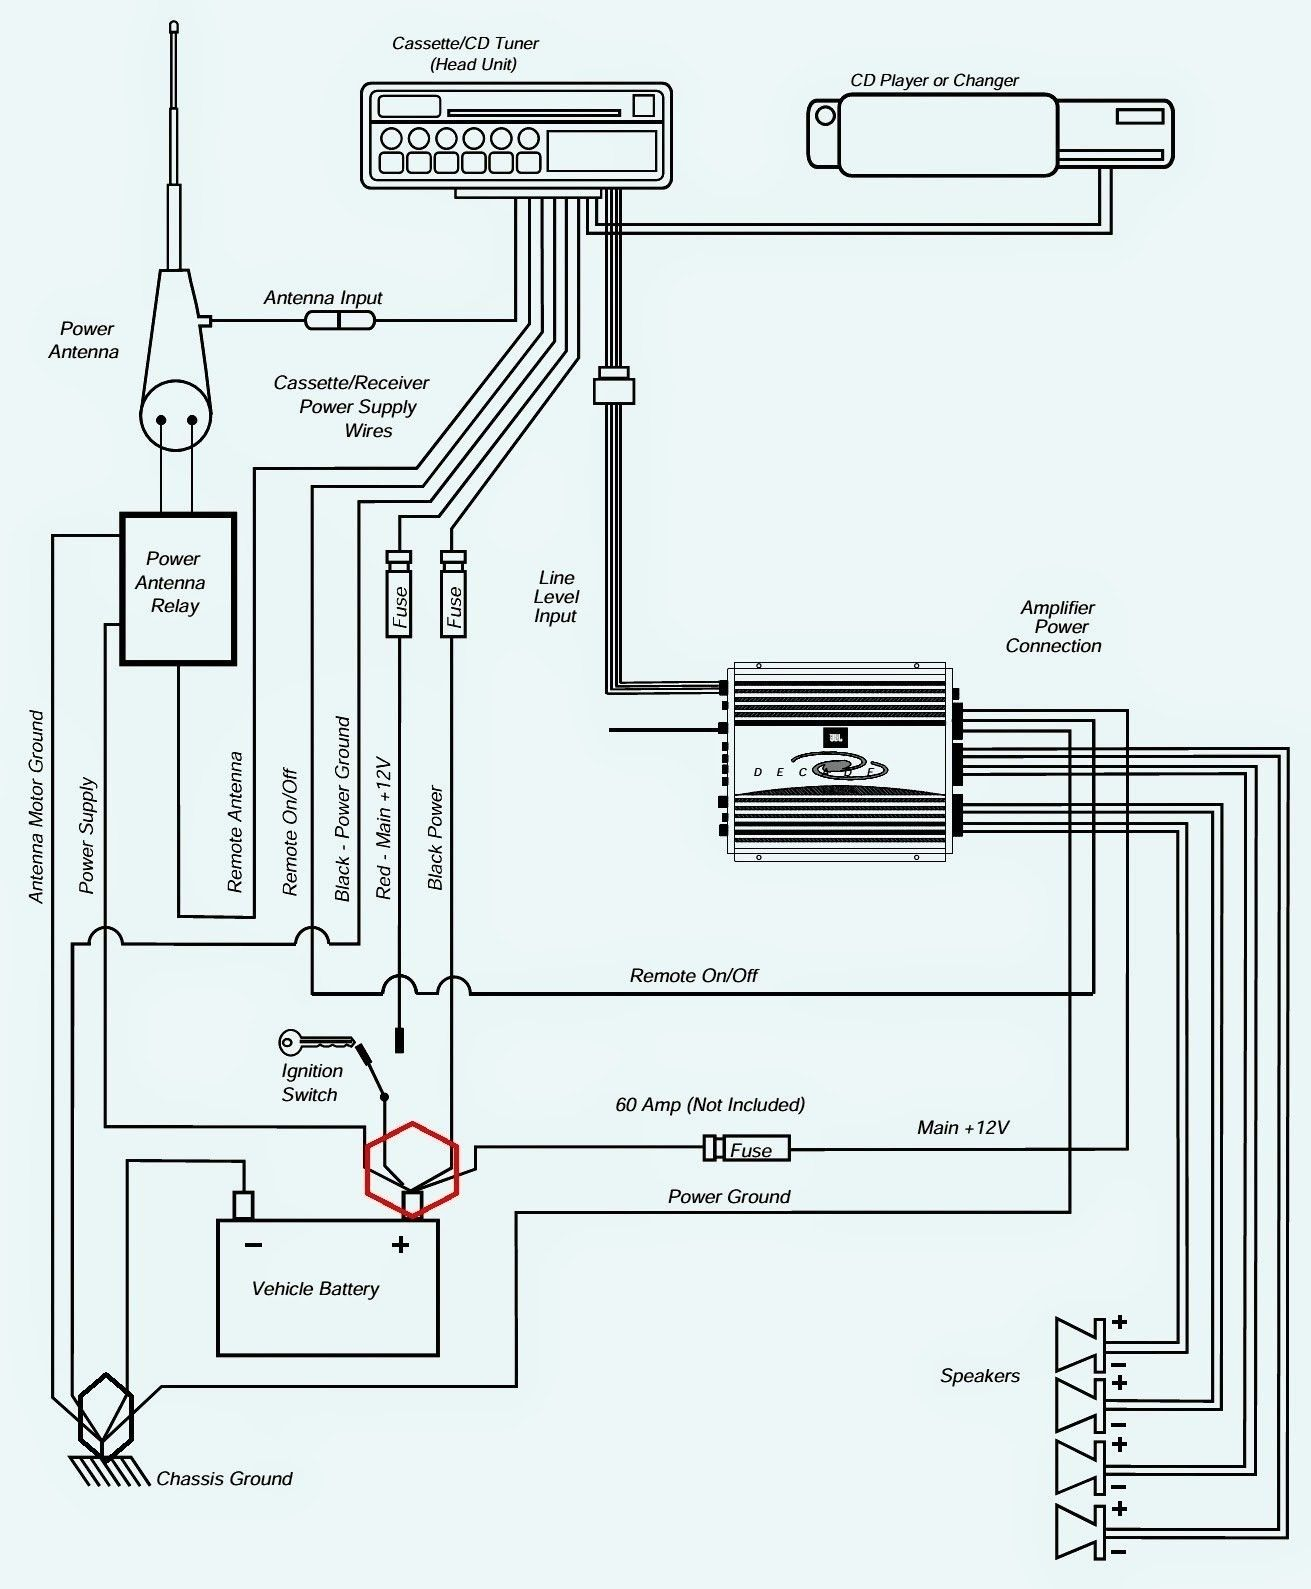 new car stereo power amplifier wiring diagram #diagram #diagramtemplate  #diagramsample  pinterest